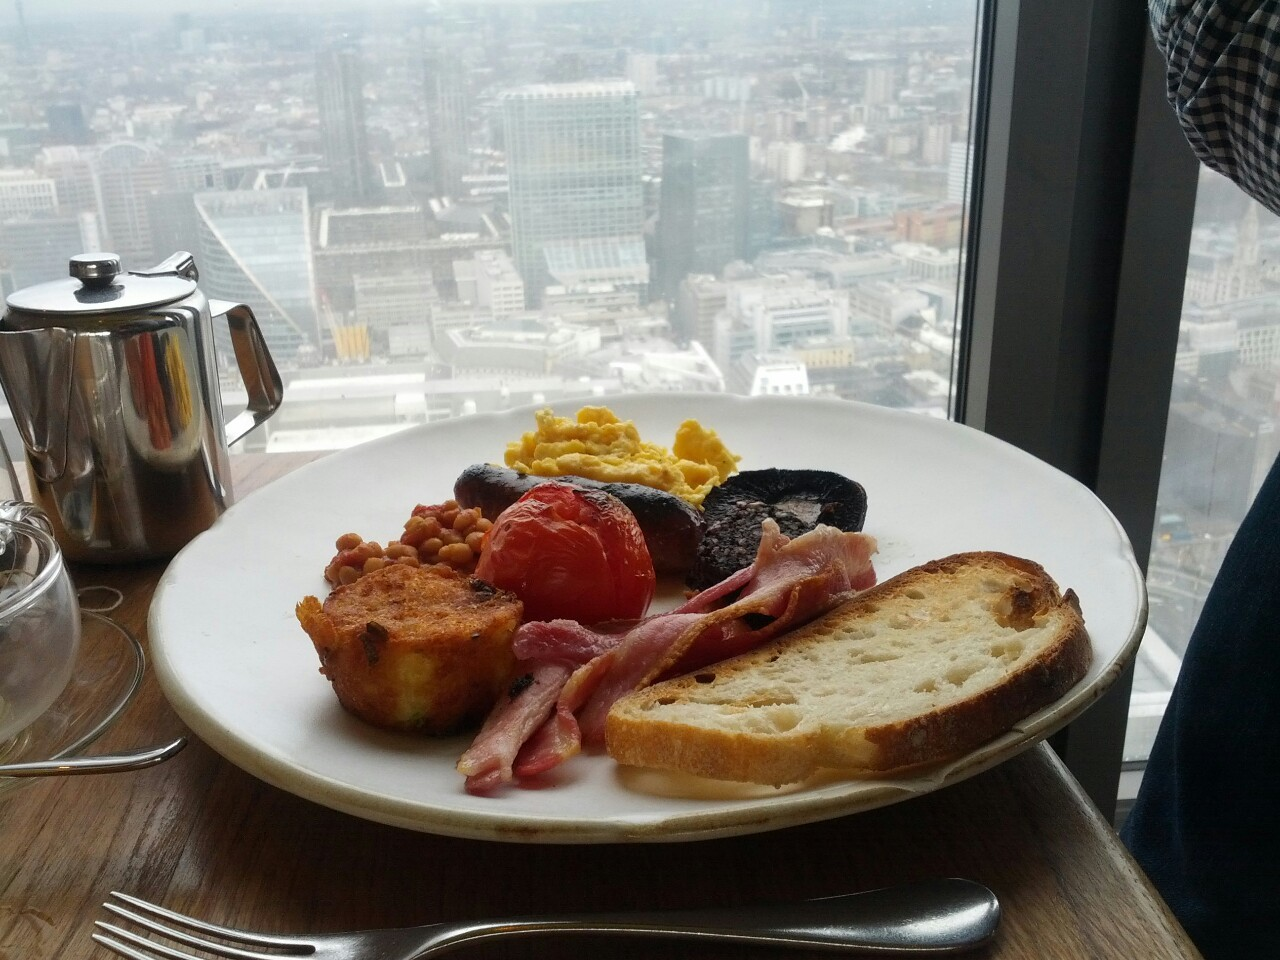 Full English in the rain clouds above London @DuckandWaffle